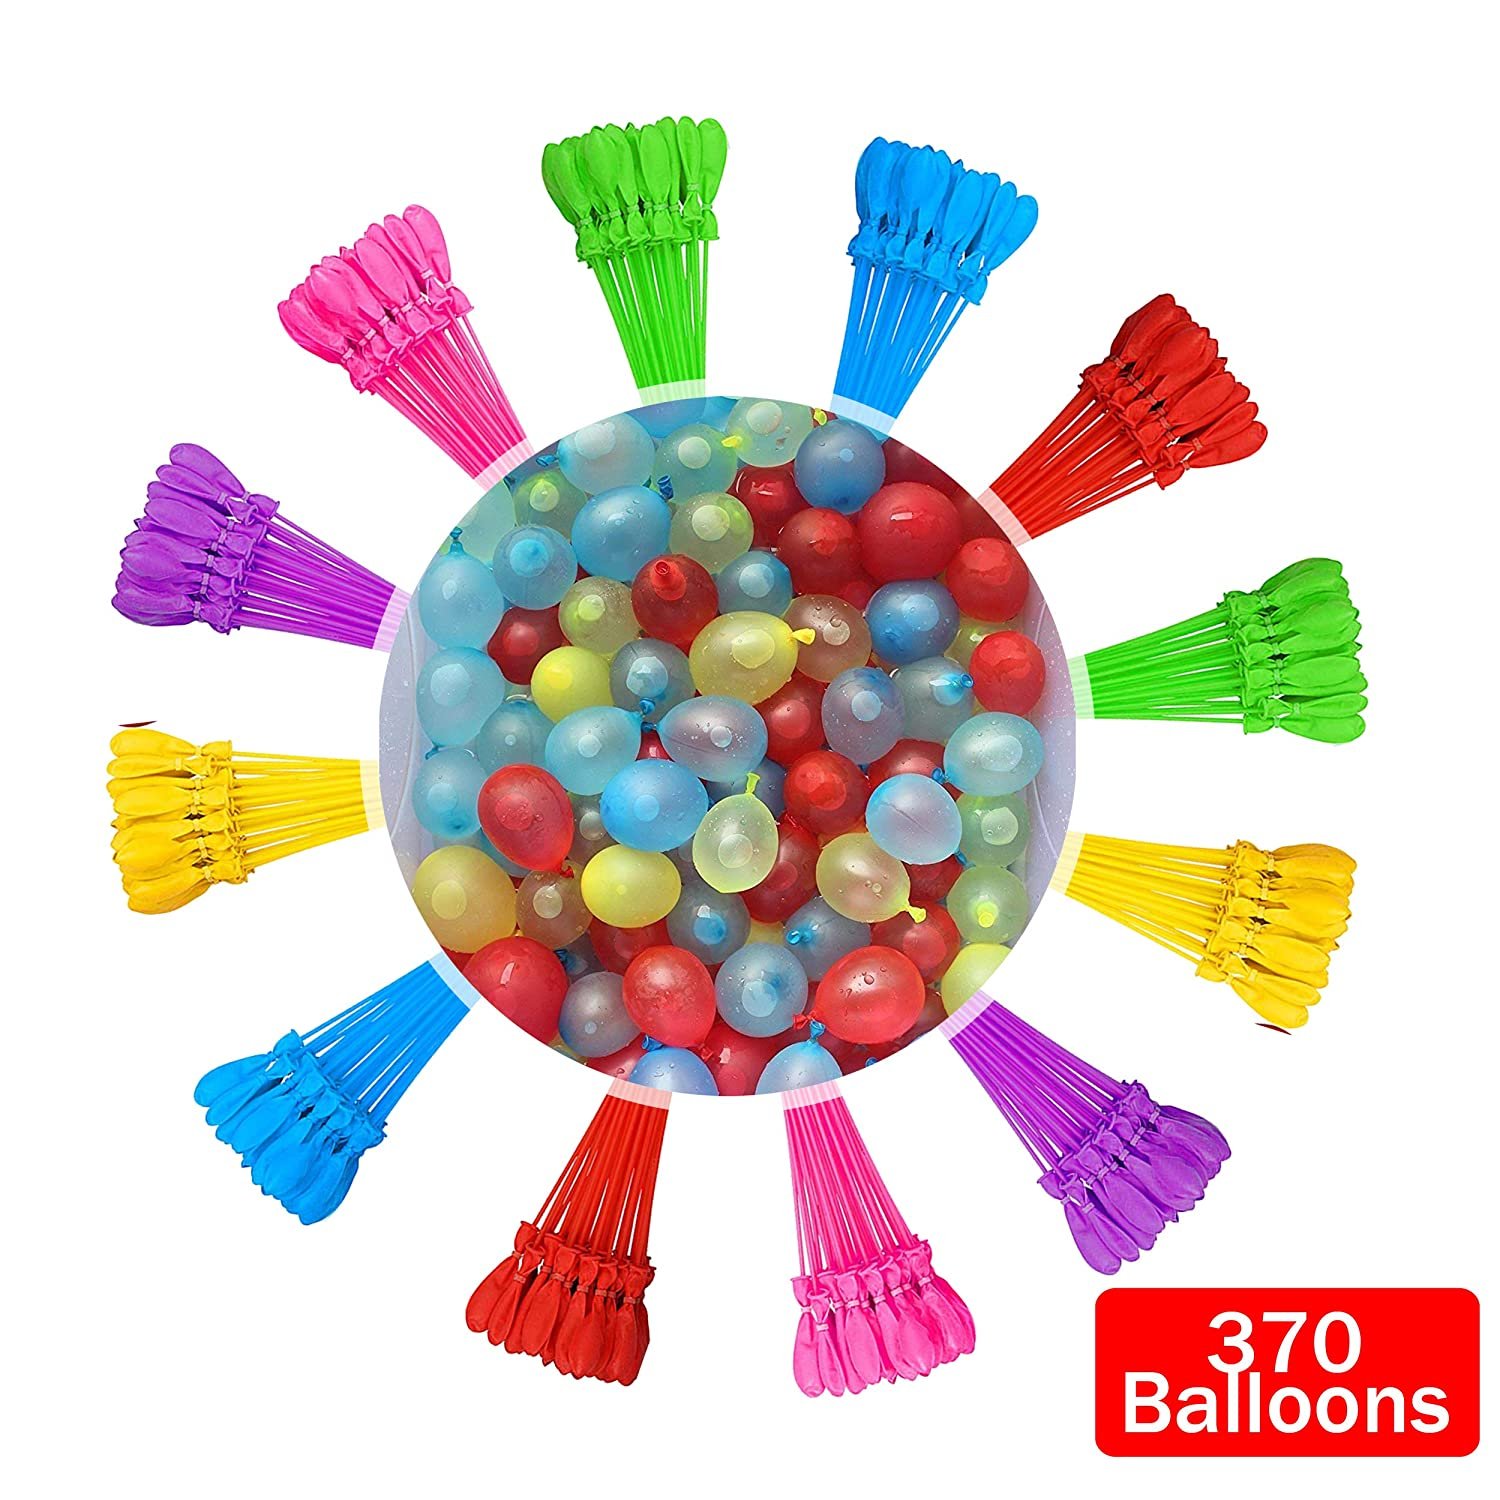 Tiny Balier Water Balloons 10 Pack 370 Balloons Easy Quick Fill for Splash Fun Kids and Adults Party Pool with Instant in 60 Seconds Color1